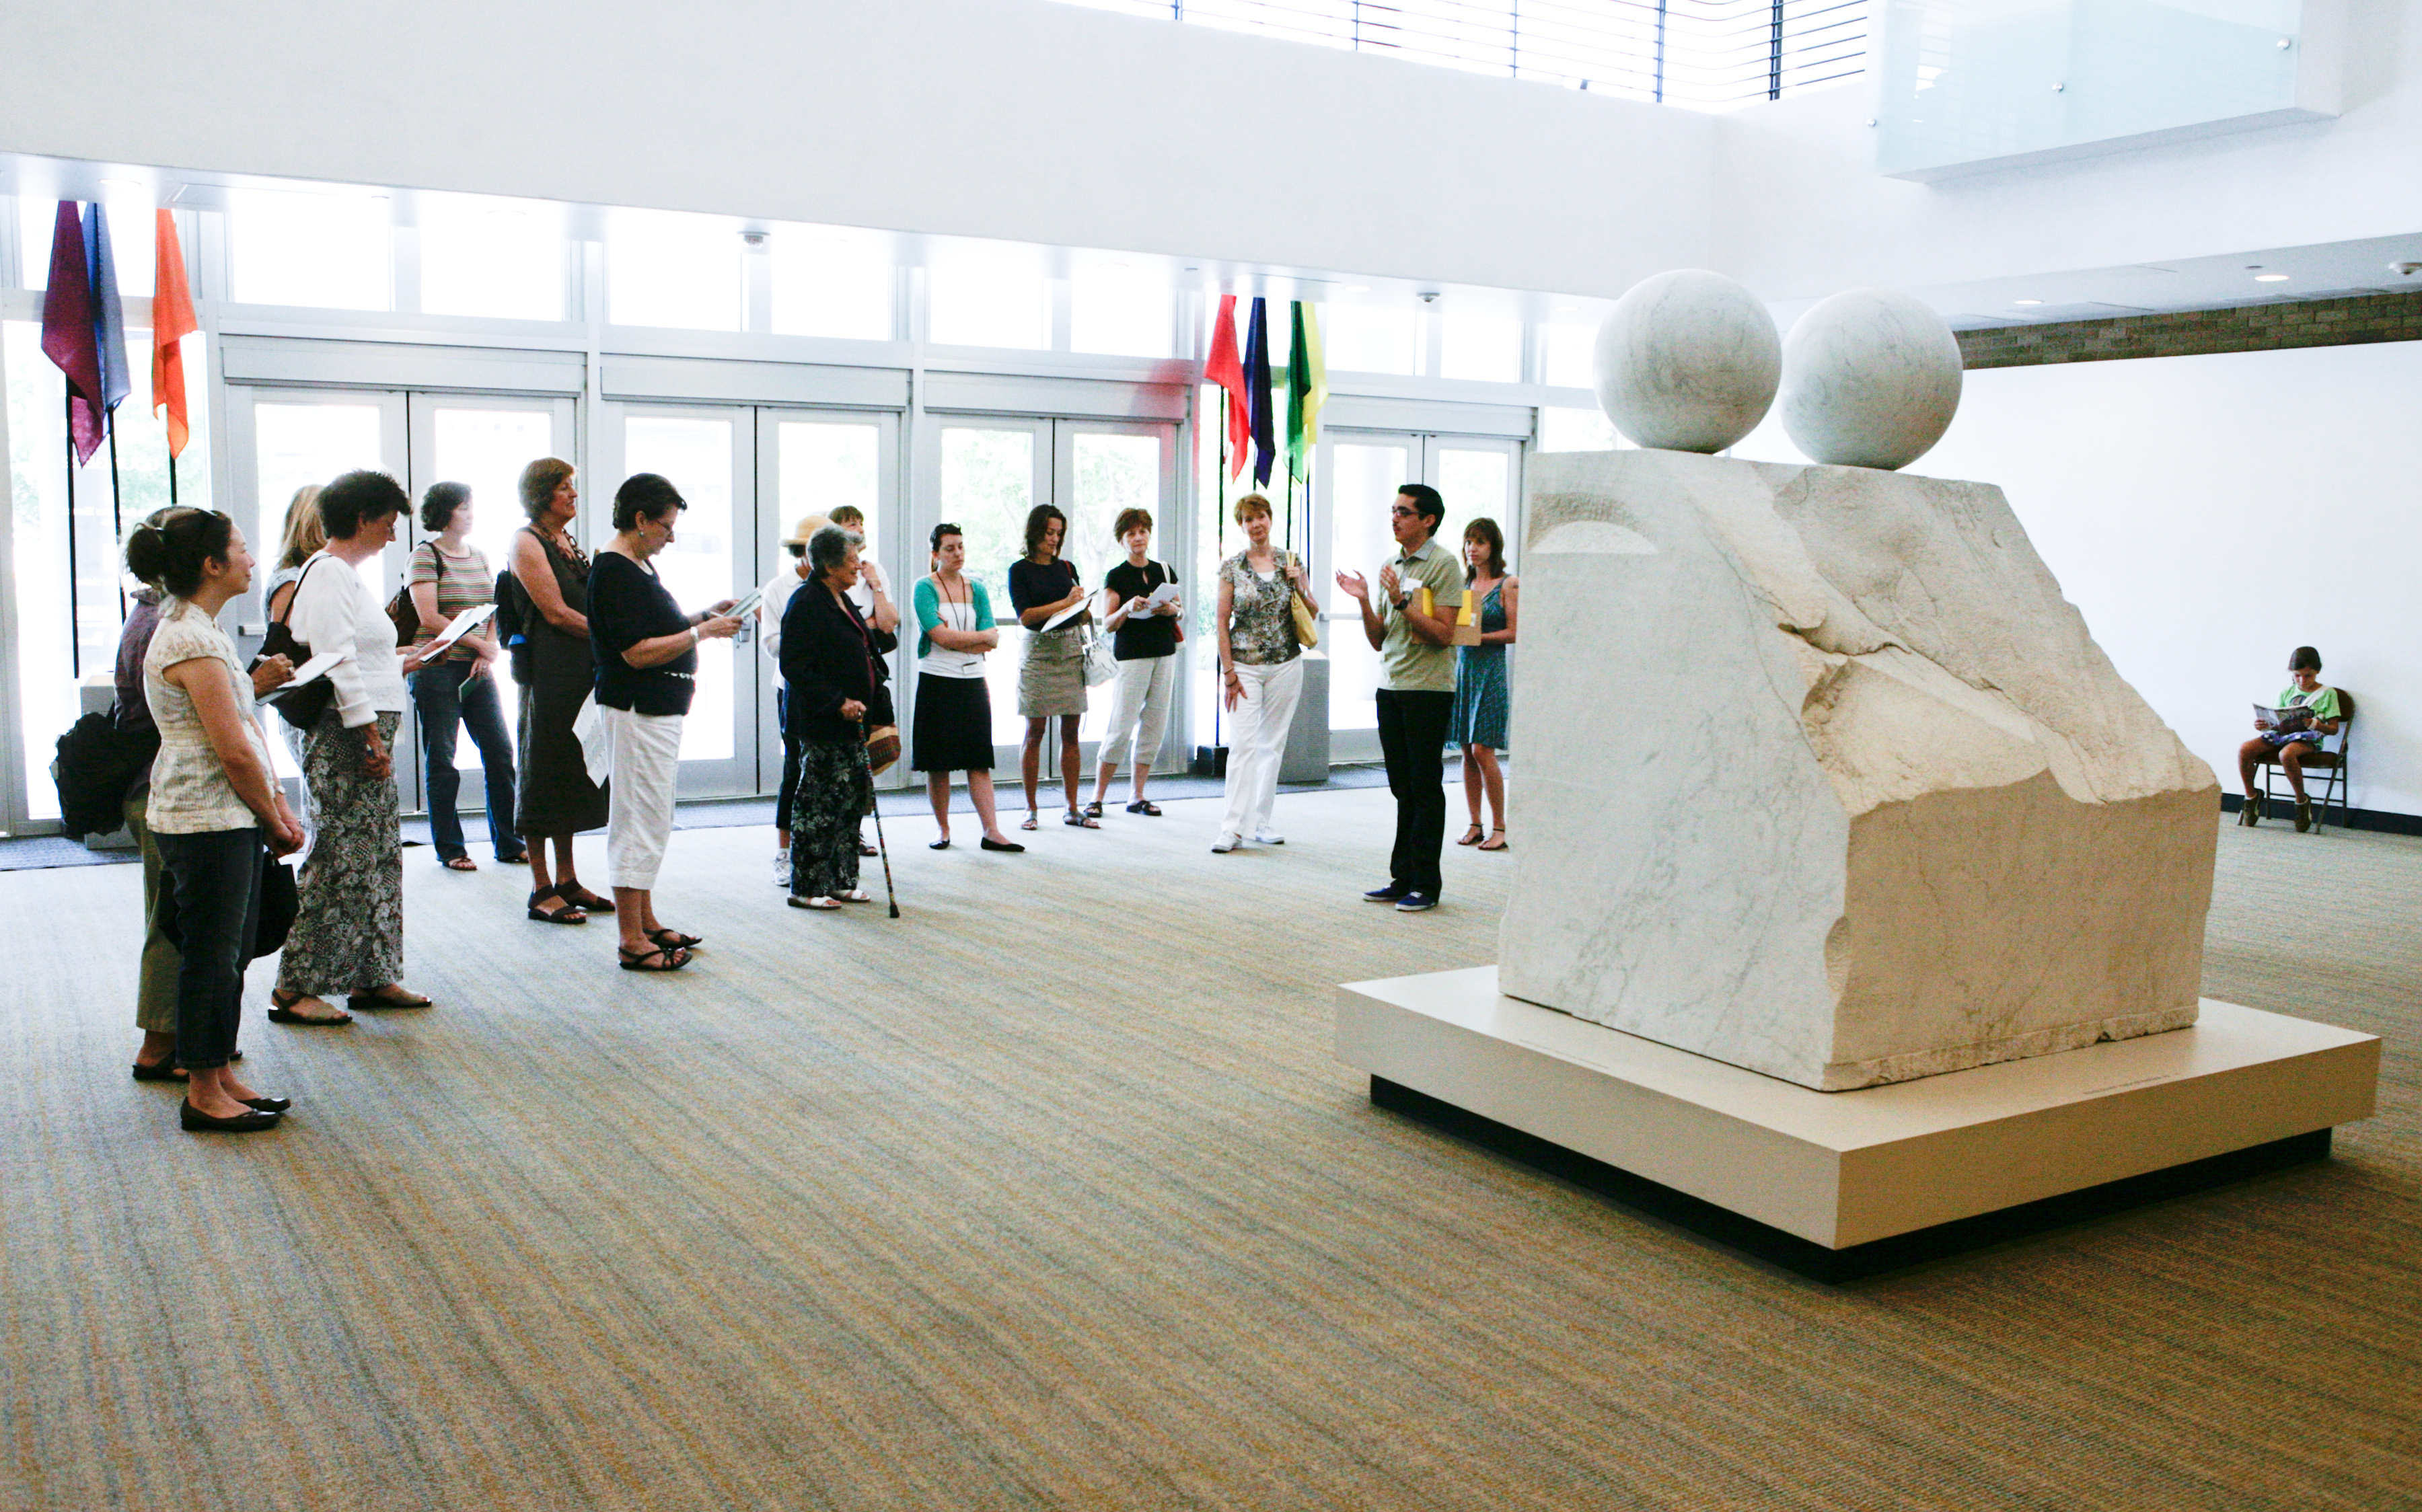 A docent tour surrounding Louise Bourgeois' sculpture